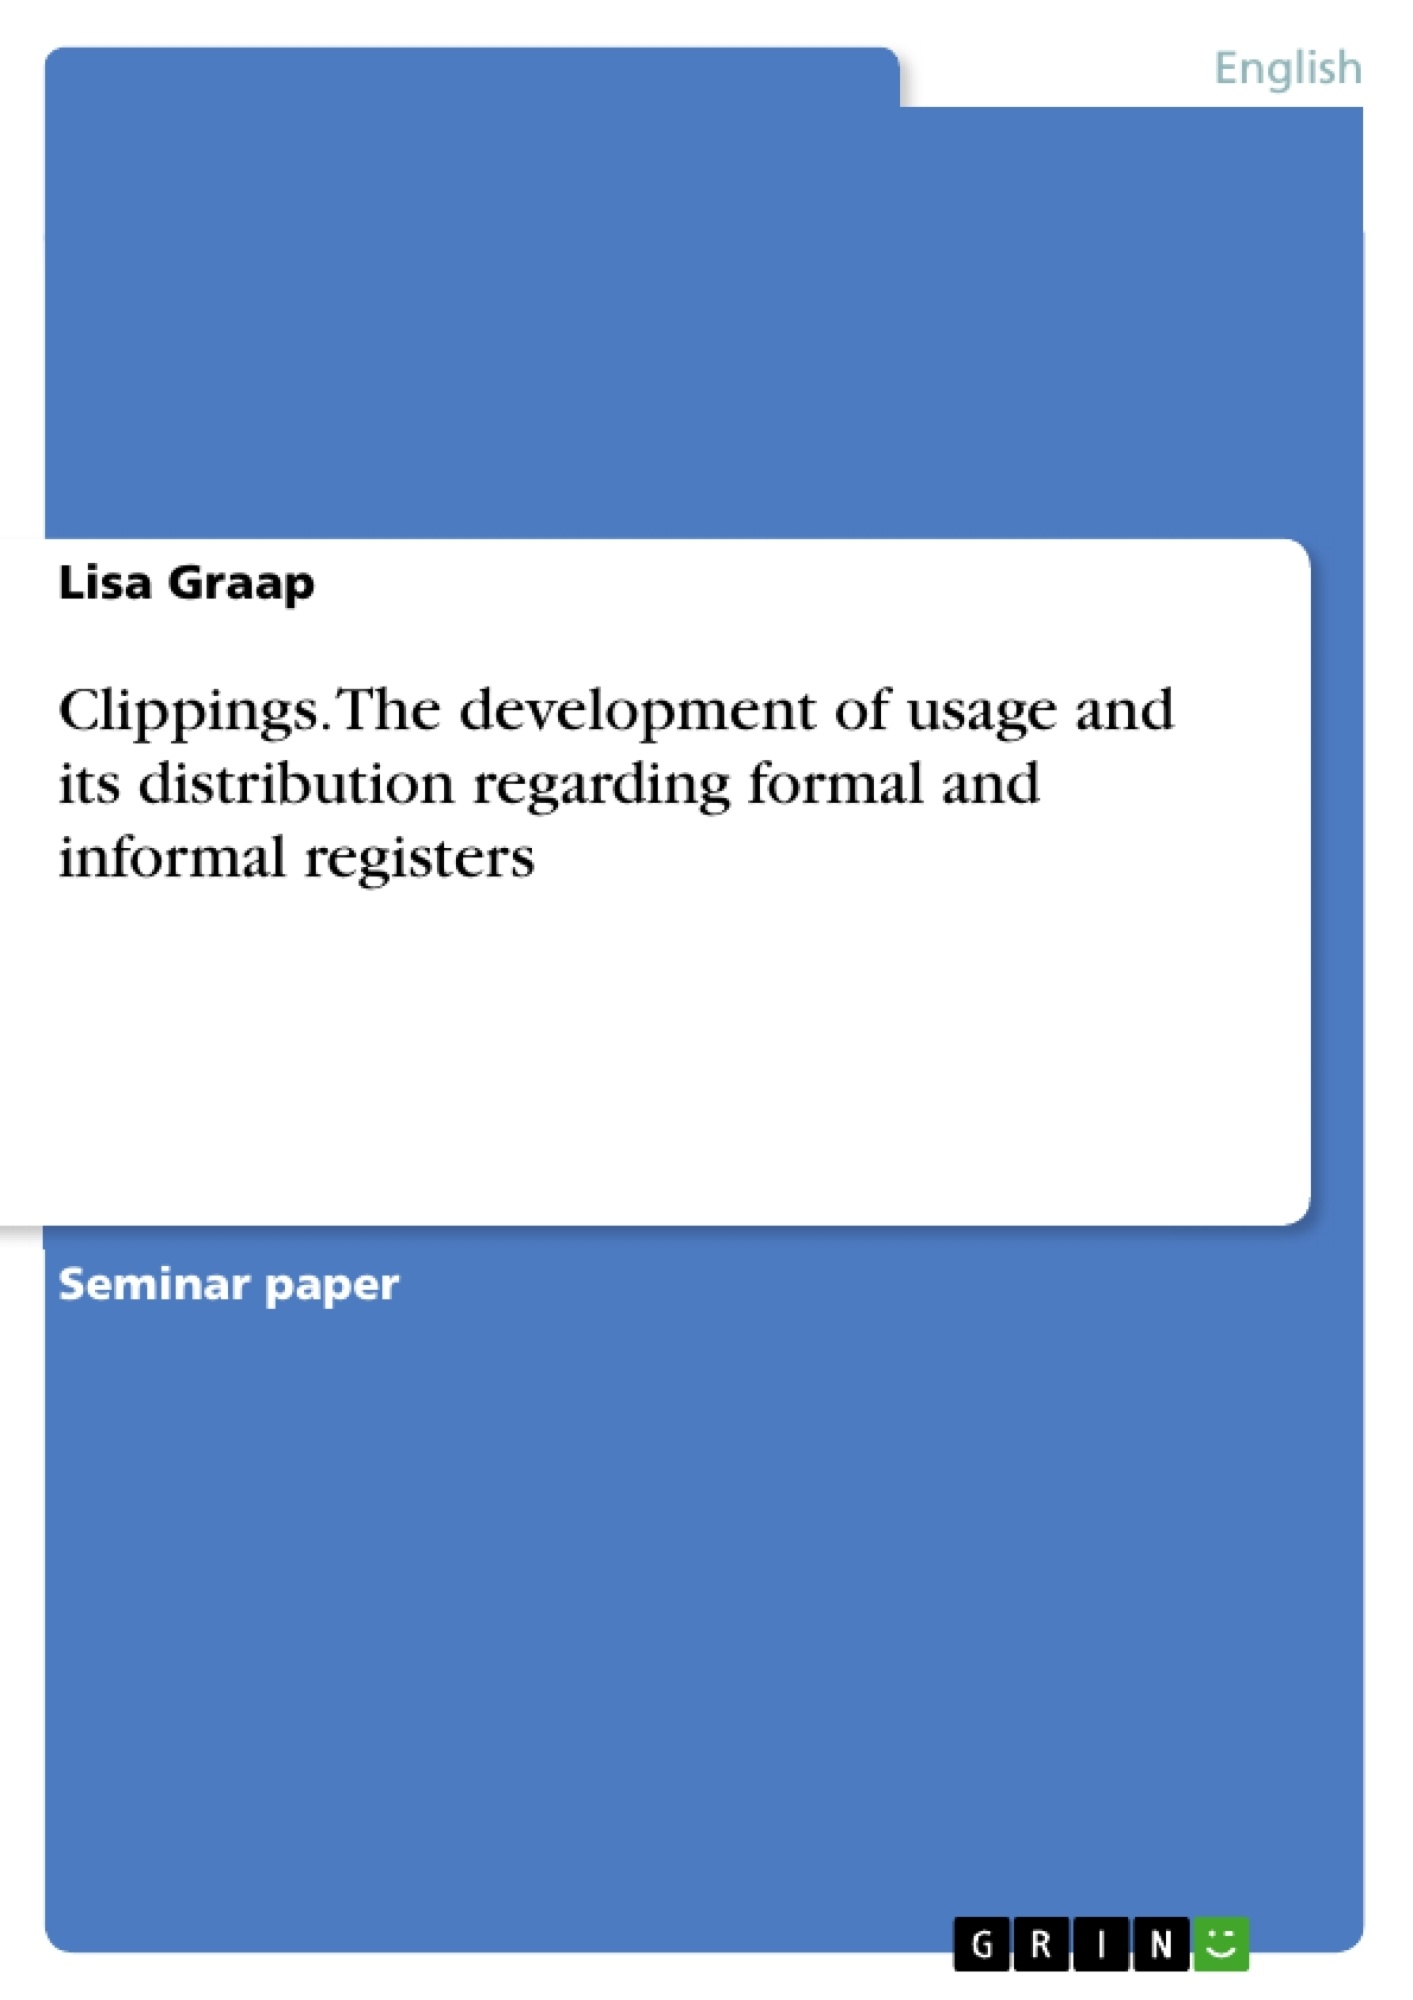 Title: Clippings. The development of usage and its distribution regarding formal and informal registers